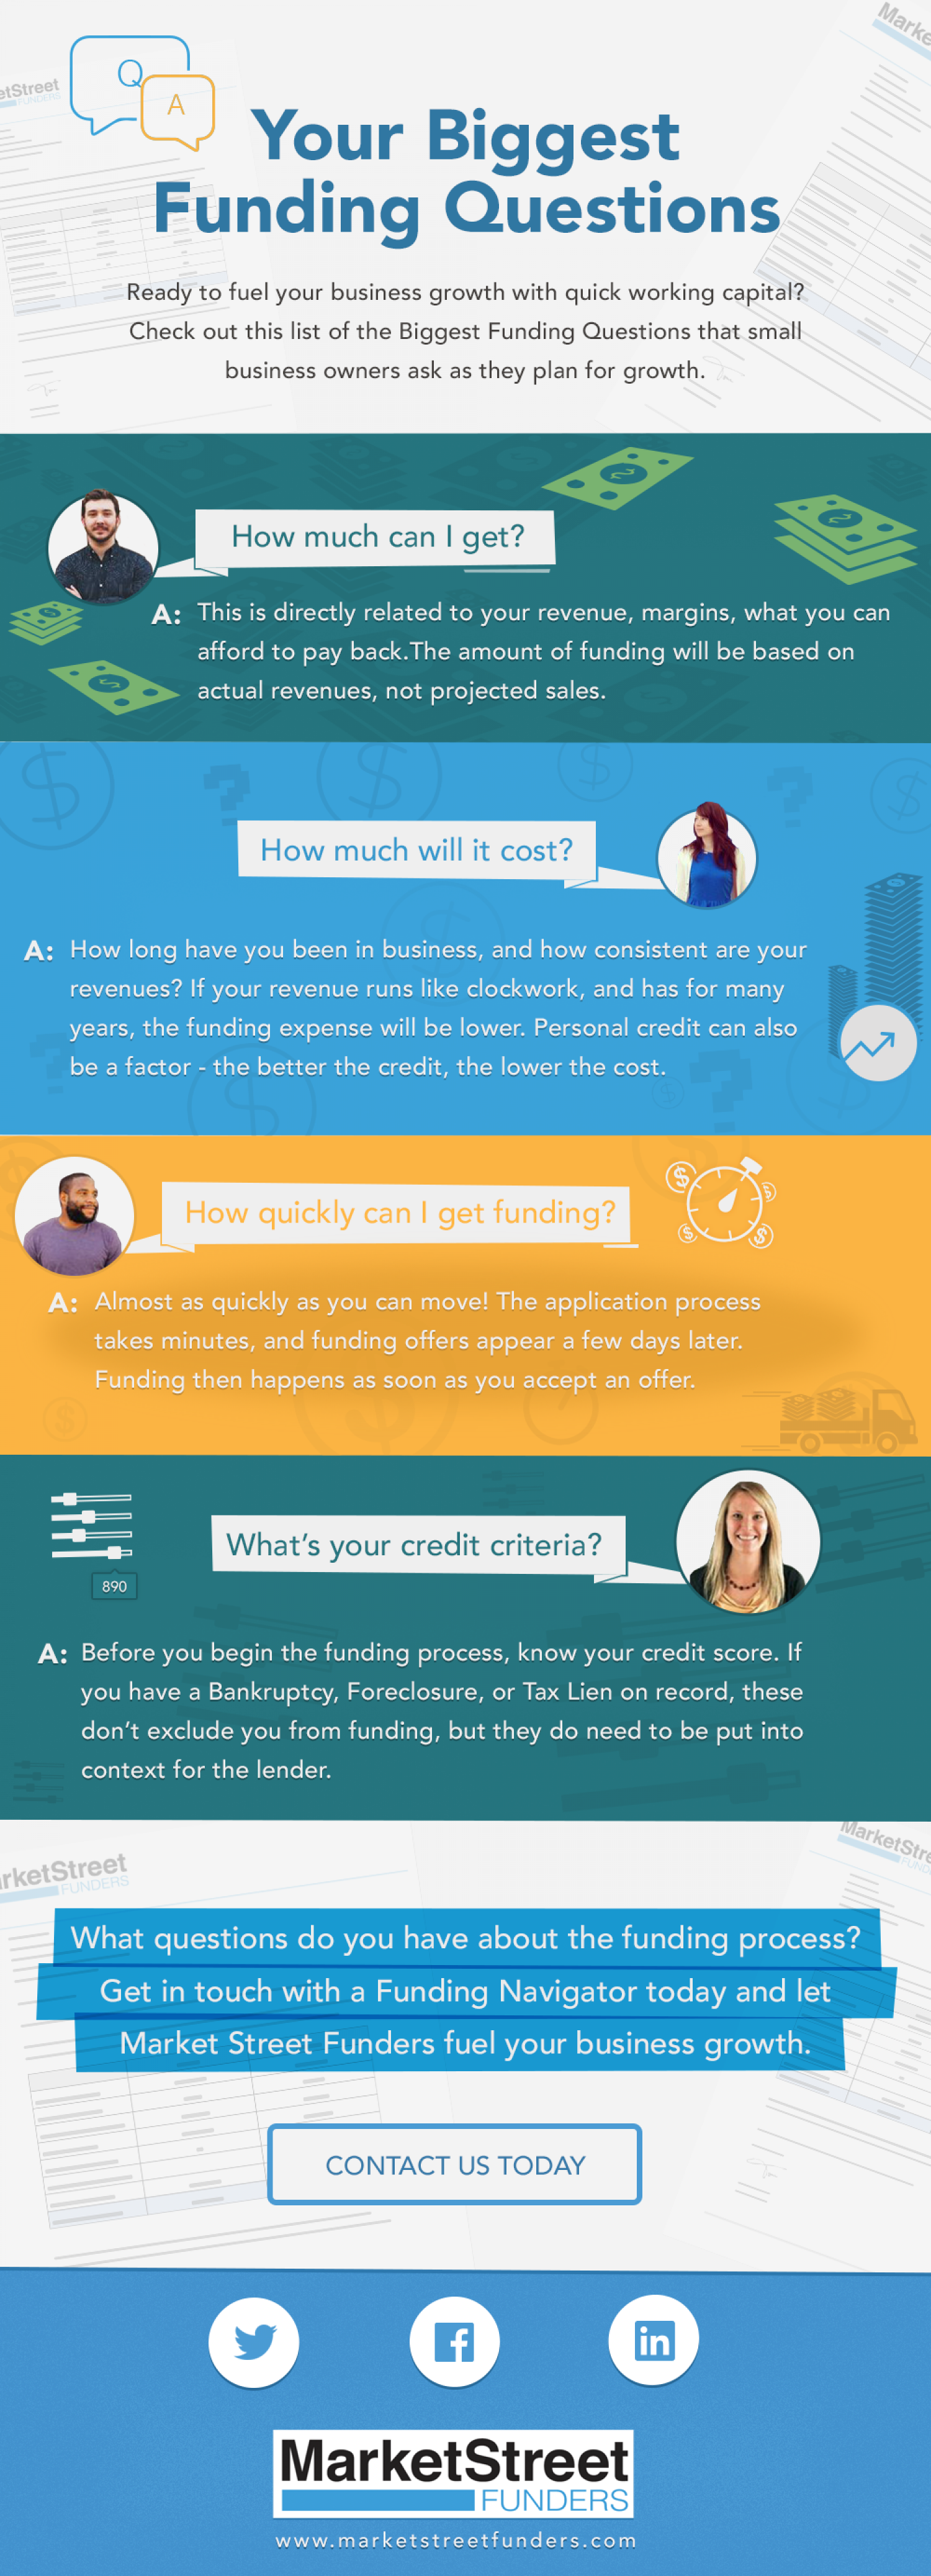 Your Biggest Funding Questions Infographic